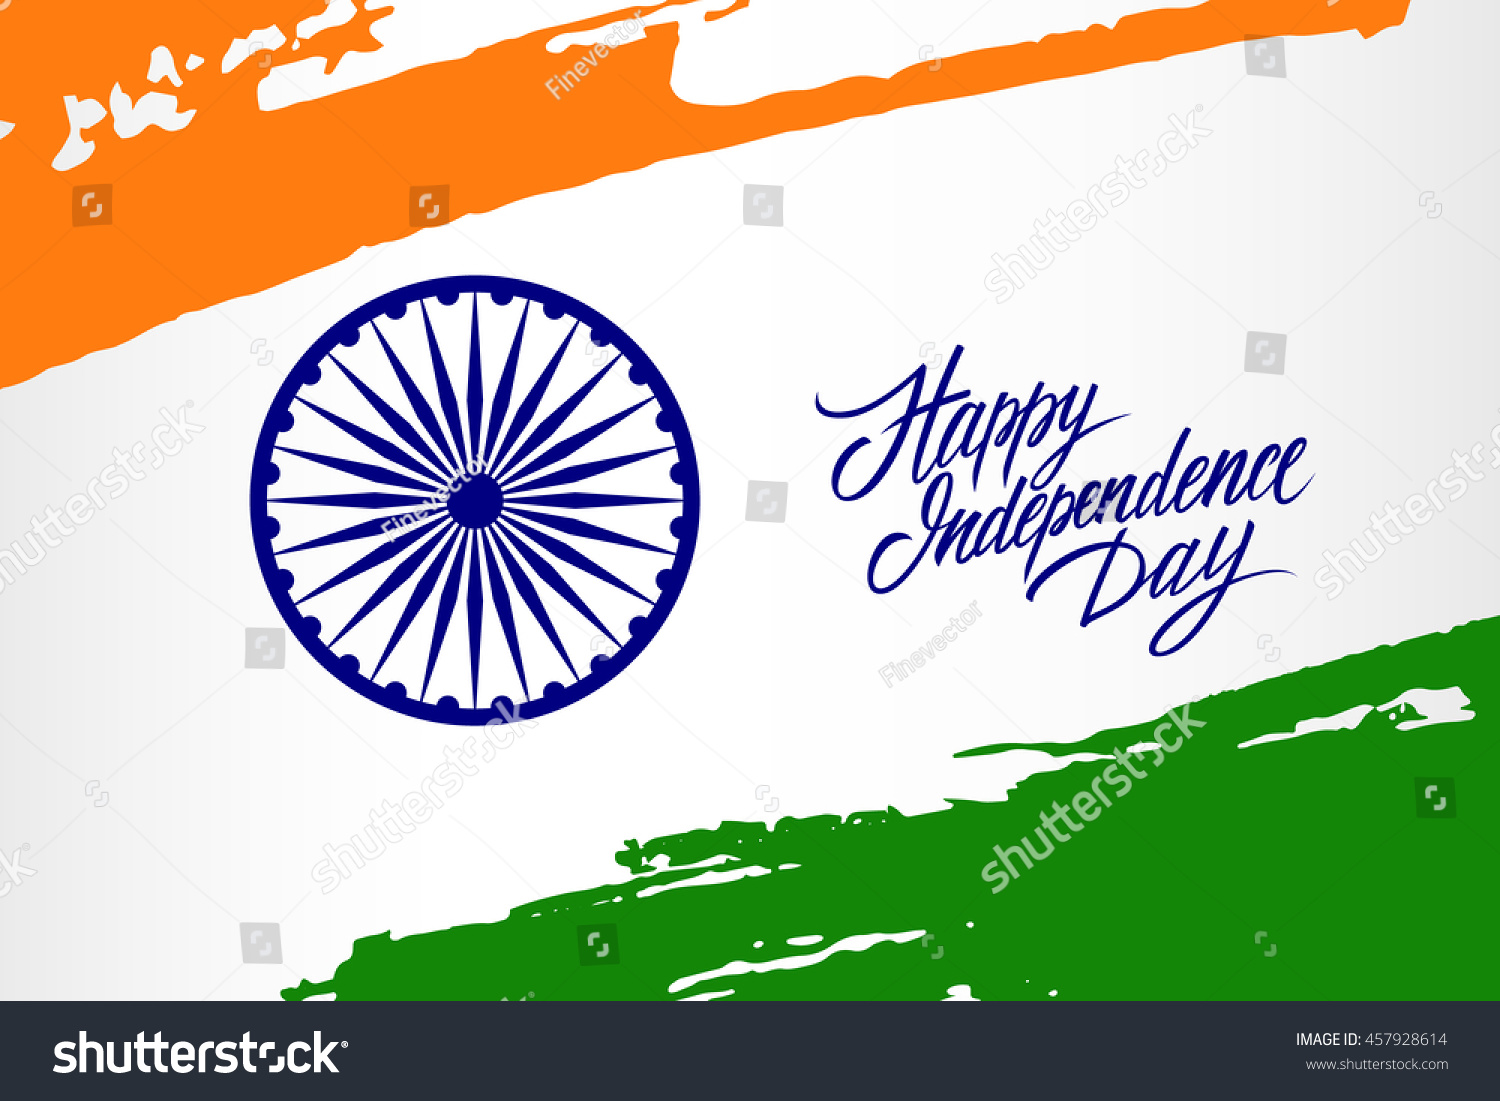 Colors website ashoka - Indian Independence Day Greeting Card With Ashoka Wheel And Brush Strokes In National Flag Colors